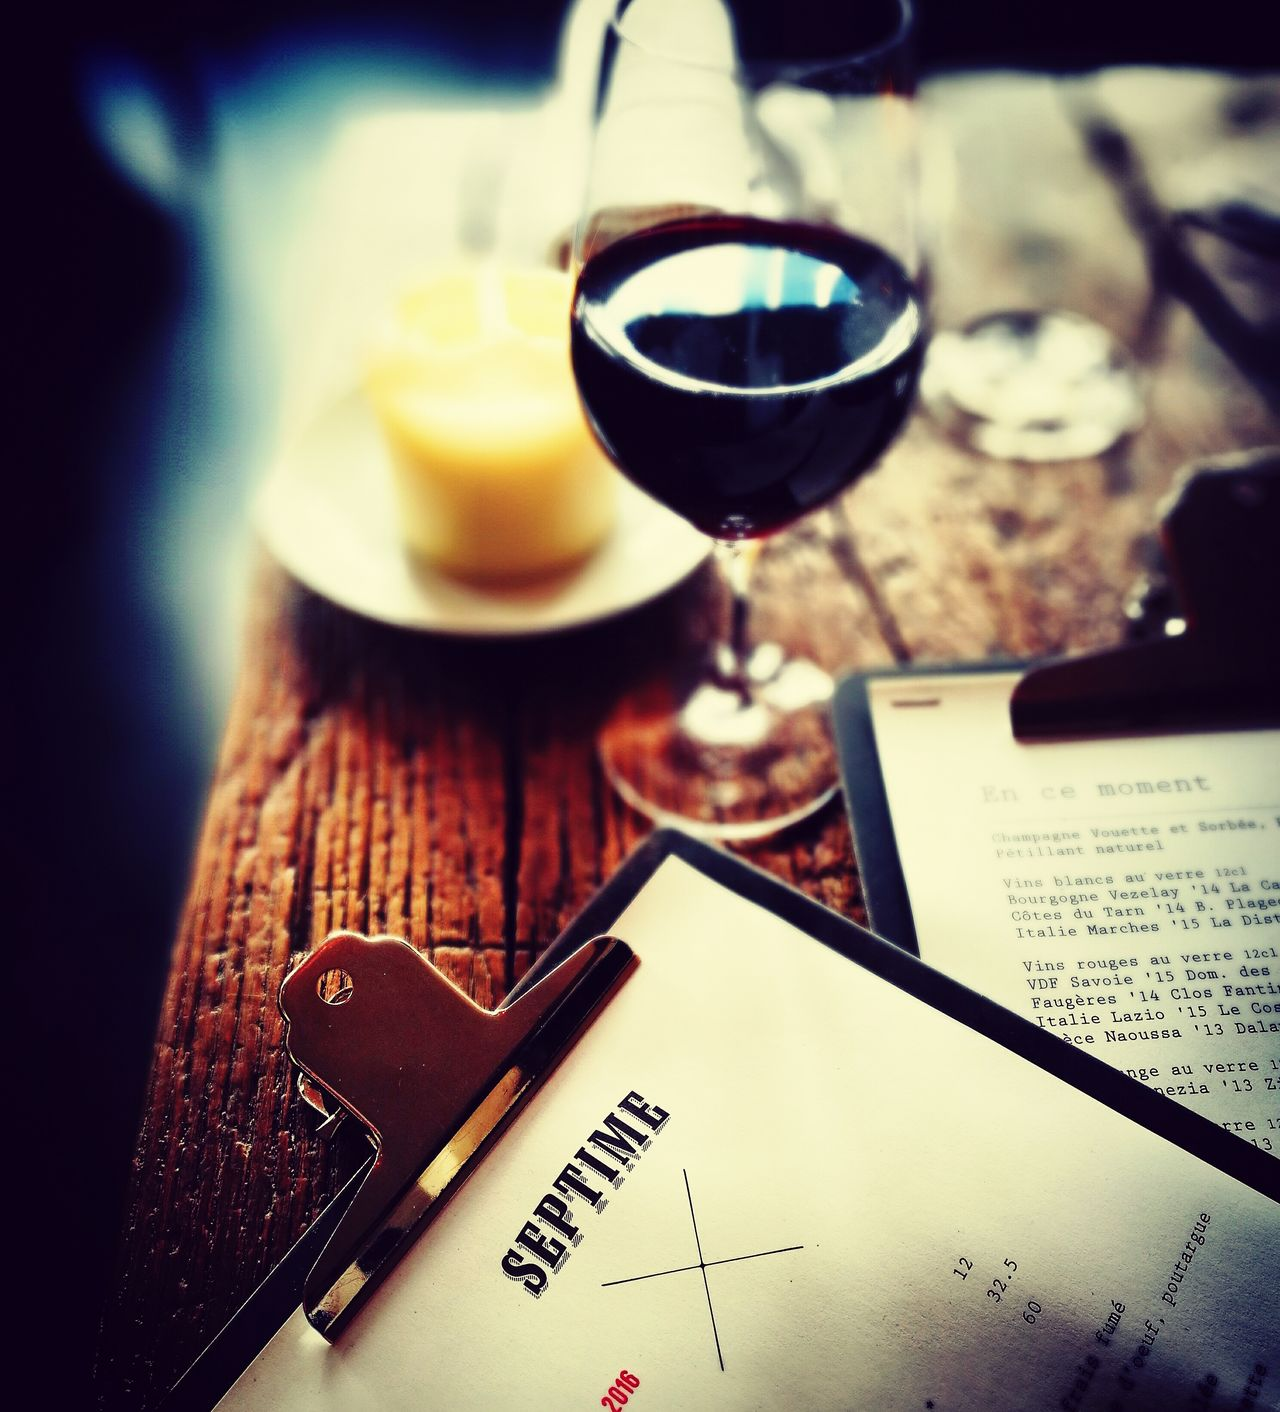 Food Food And Drink Table Wine Wineglass Wine Glass Restaurant Kitchen French Cuisine Septime Lifestyles Soyafilms Soyafilms Bio Health Healthy Eating Paris